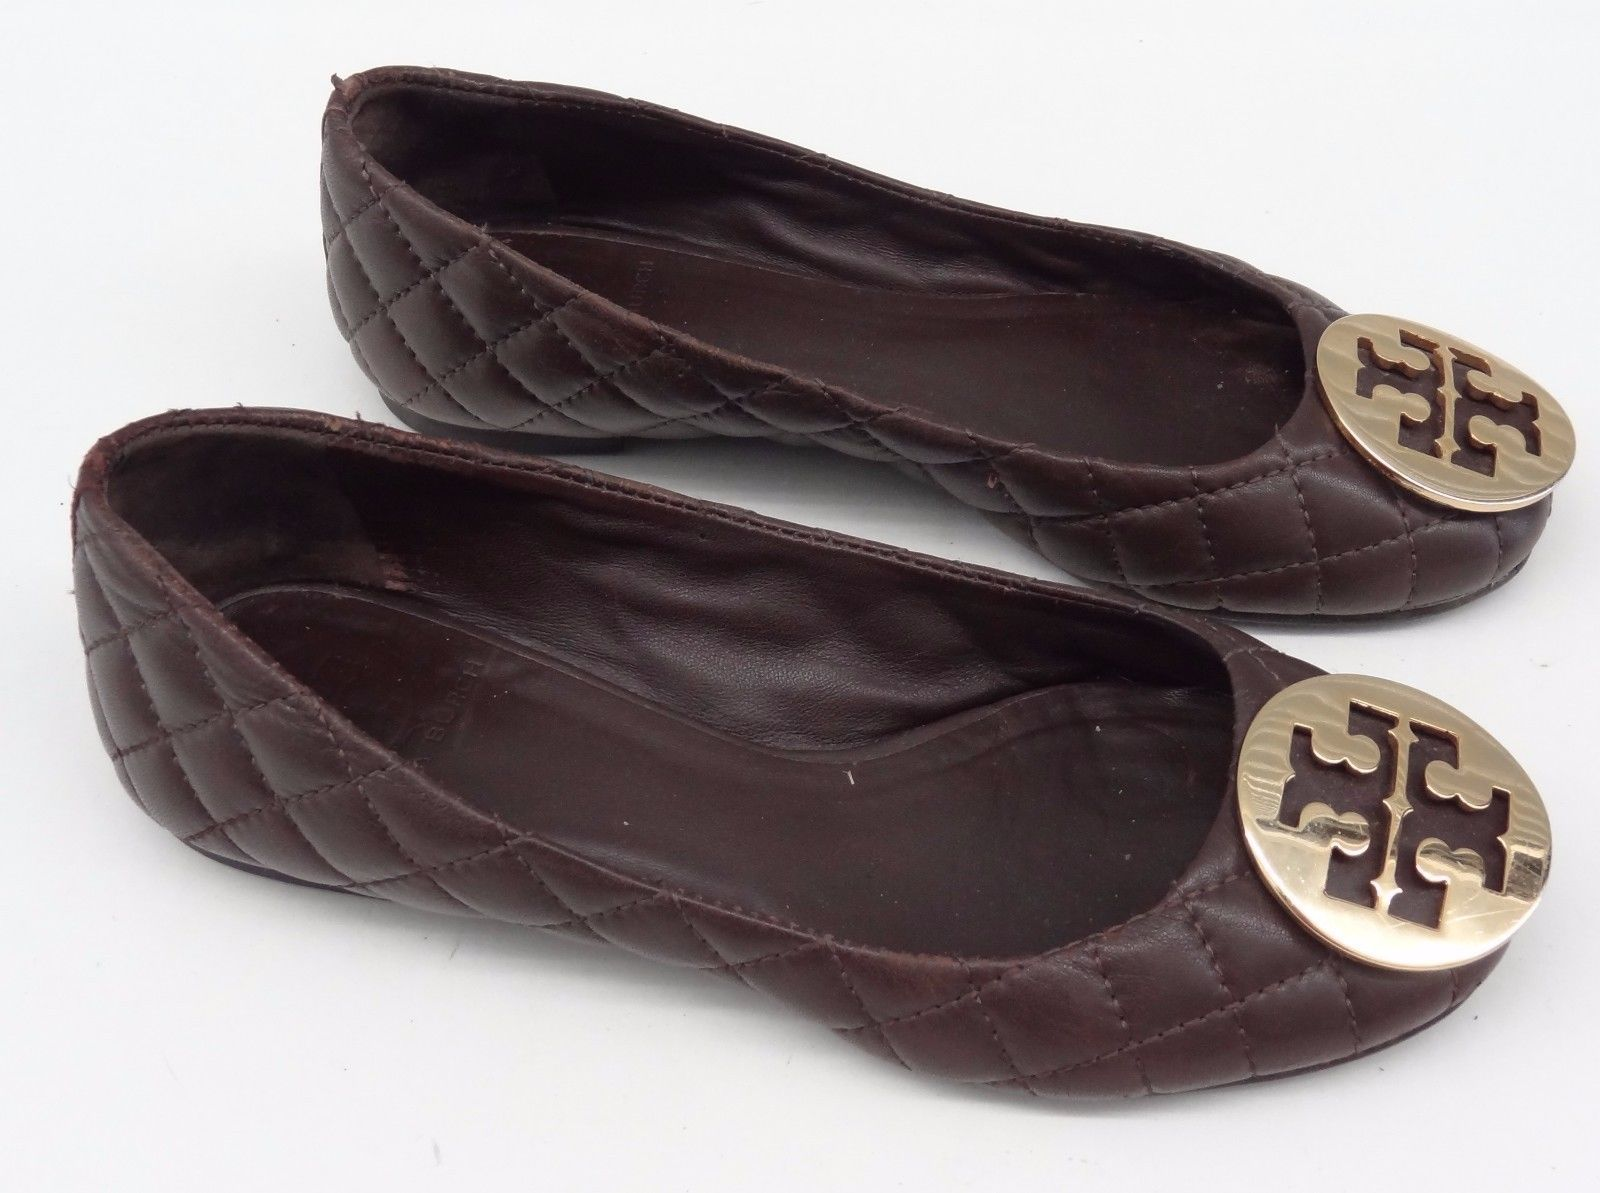 e8a4c52cdd68  225 TORY BURCH Reva Ballet Flats Shoes and 50 similar items. S l1600